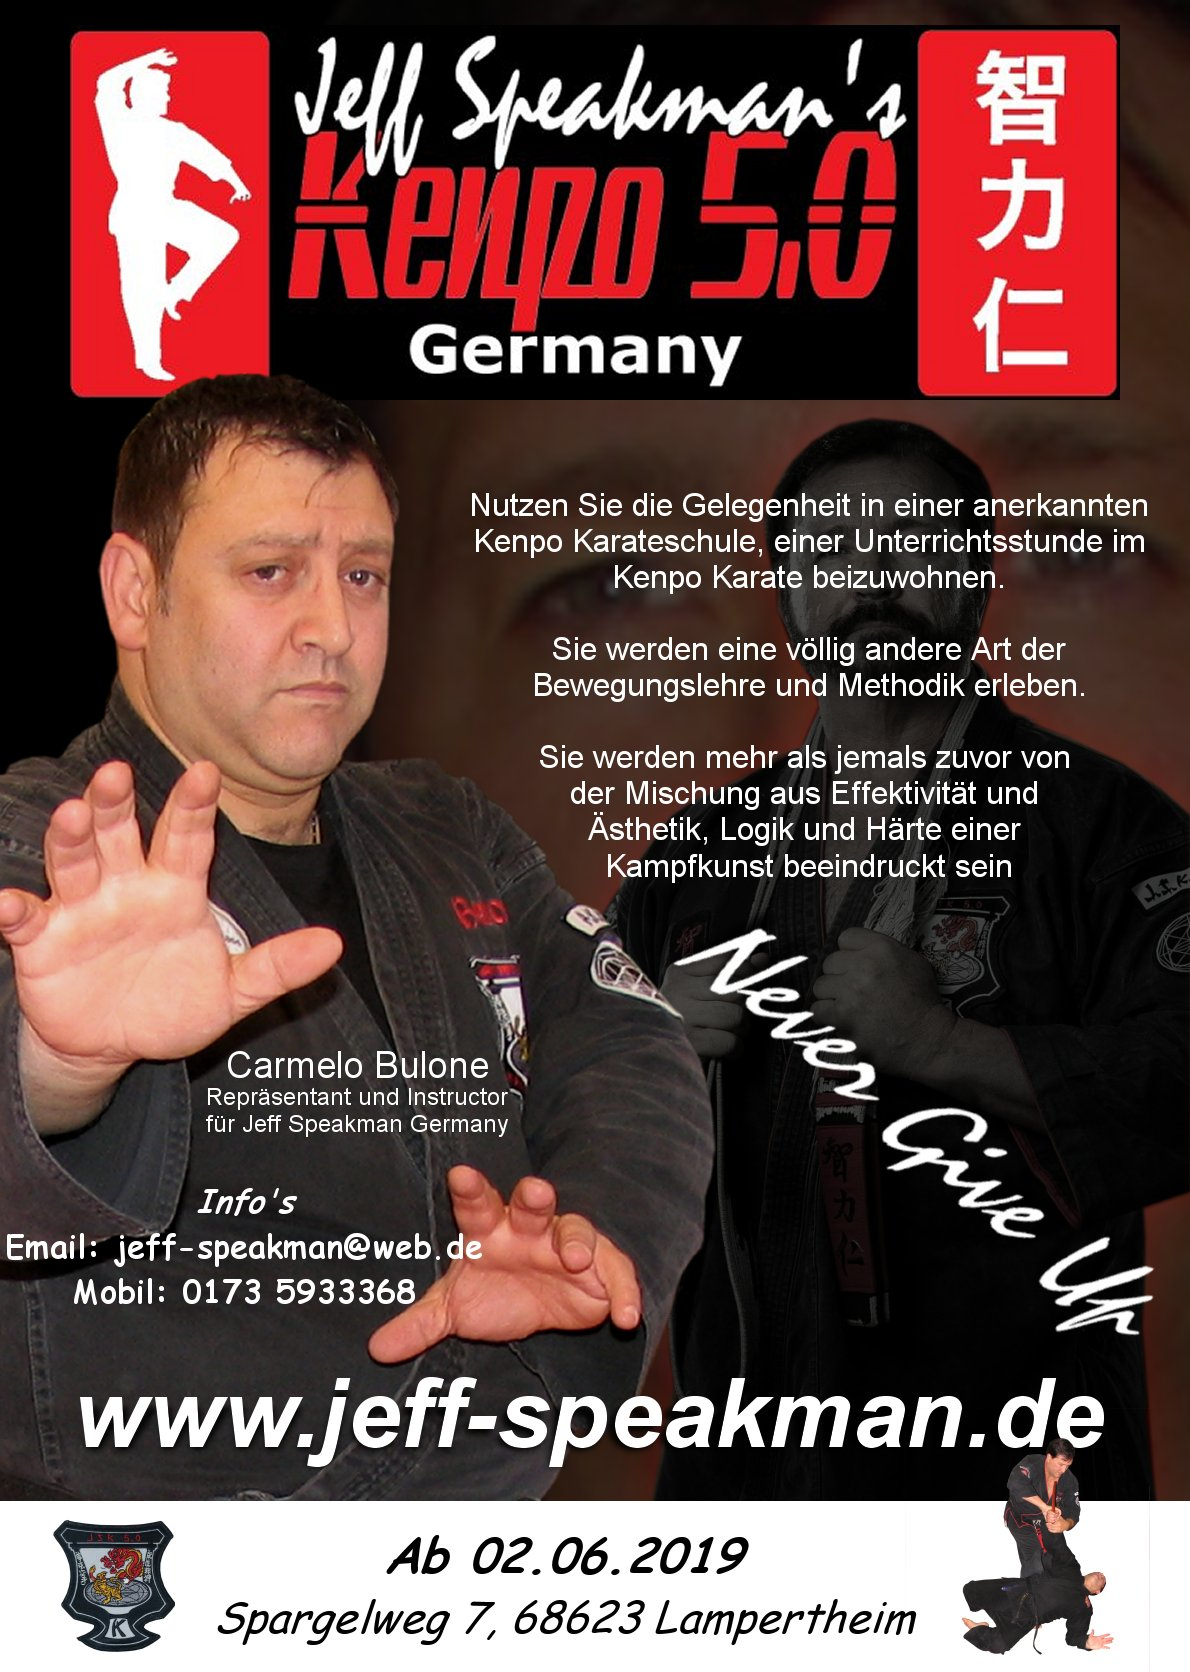 Kenpo 5.0 in Lampertheim